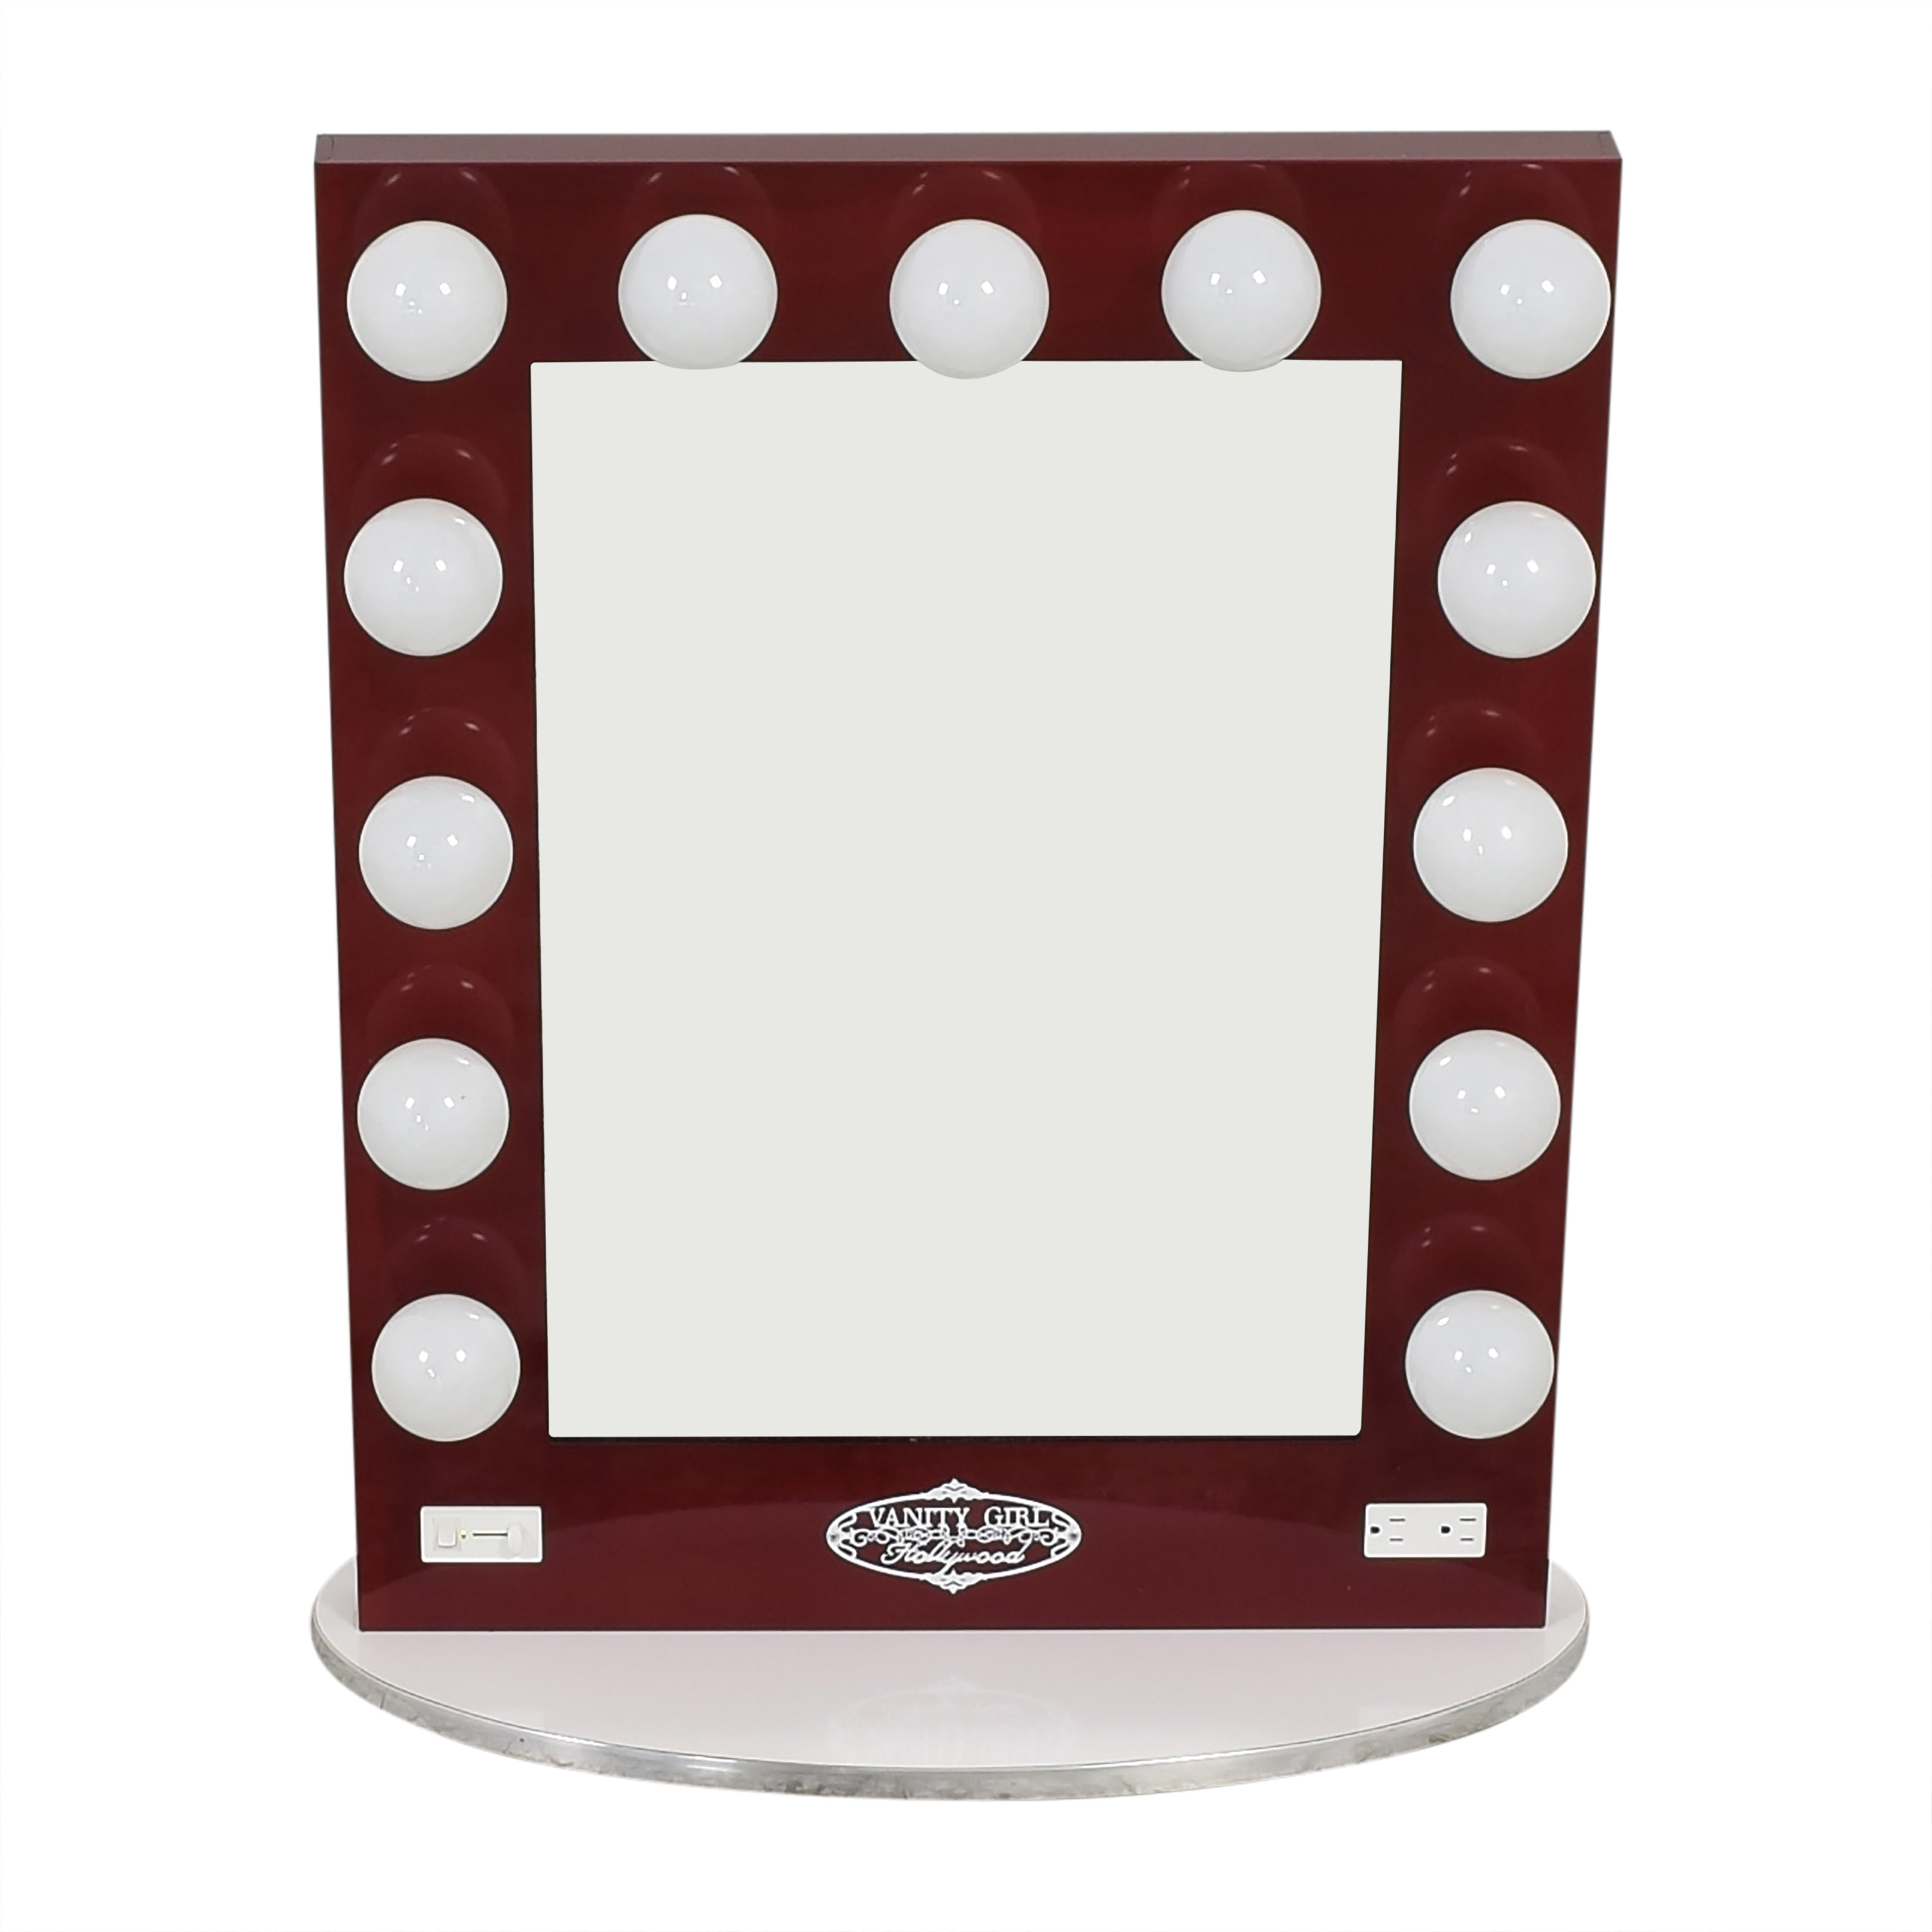 Vanity Girl Hollywood Vanity Girl Hollywood Broadway Lighted Mirror